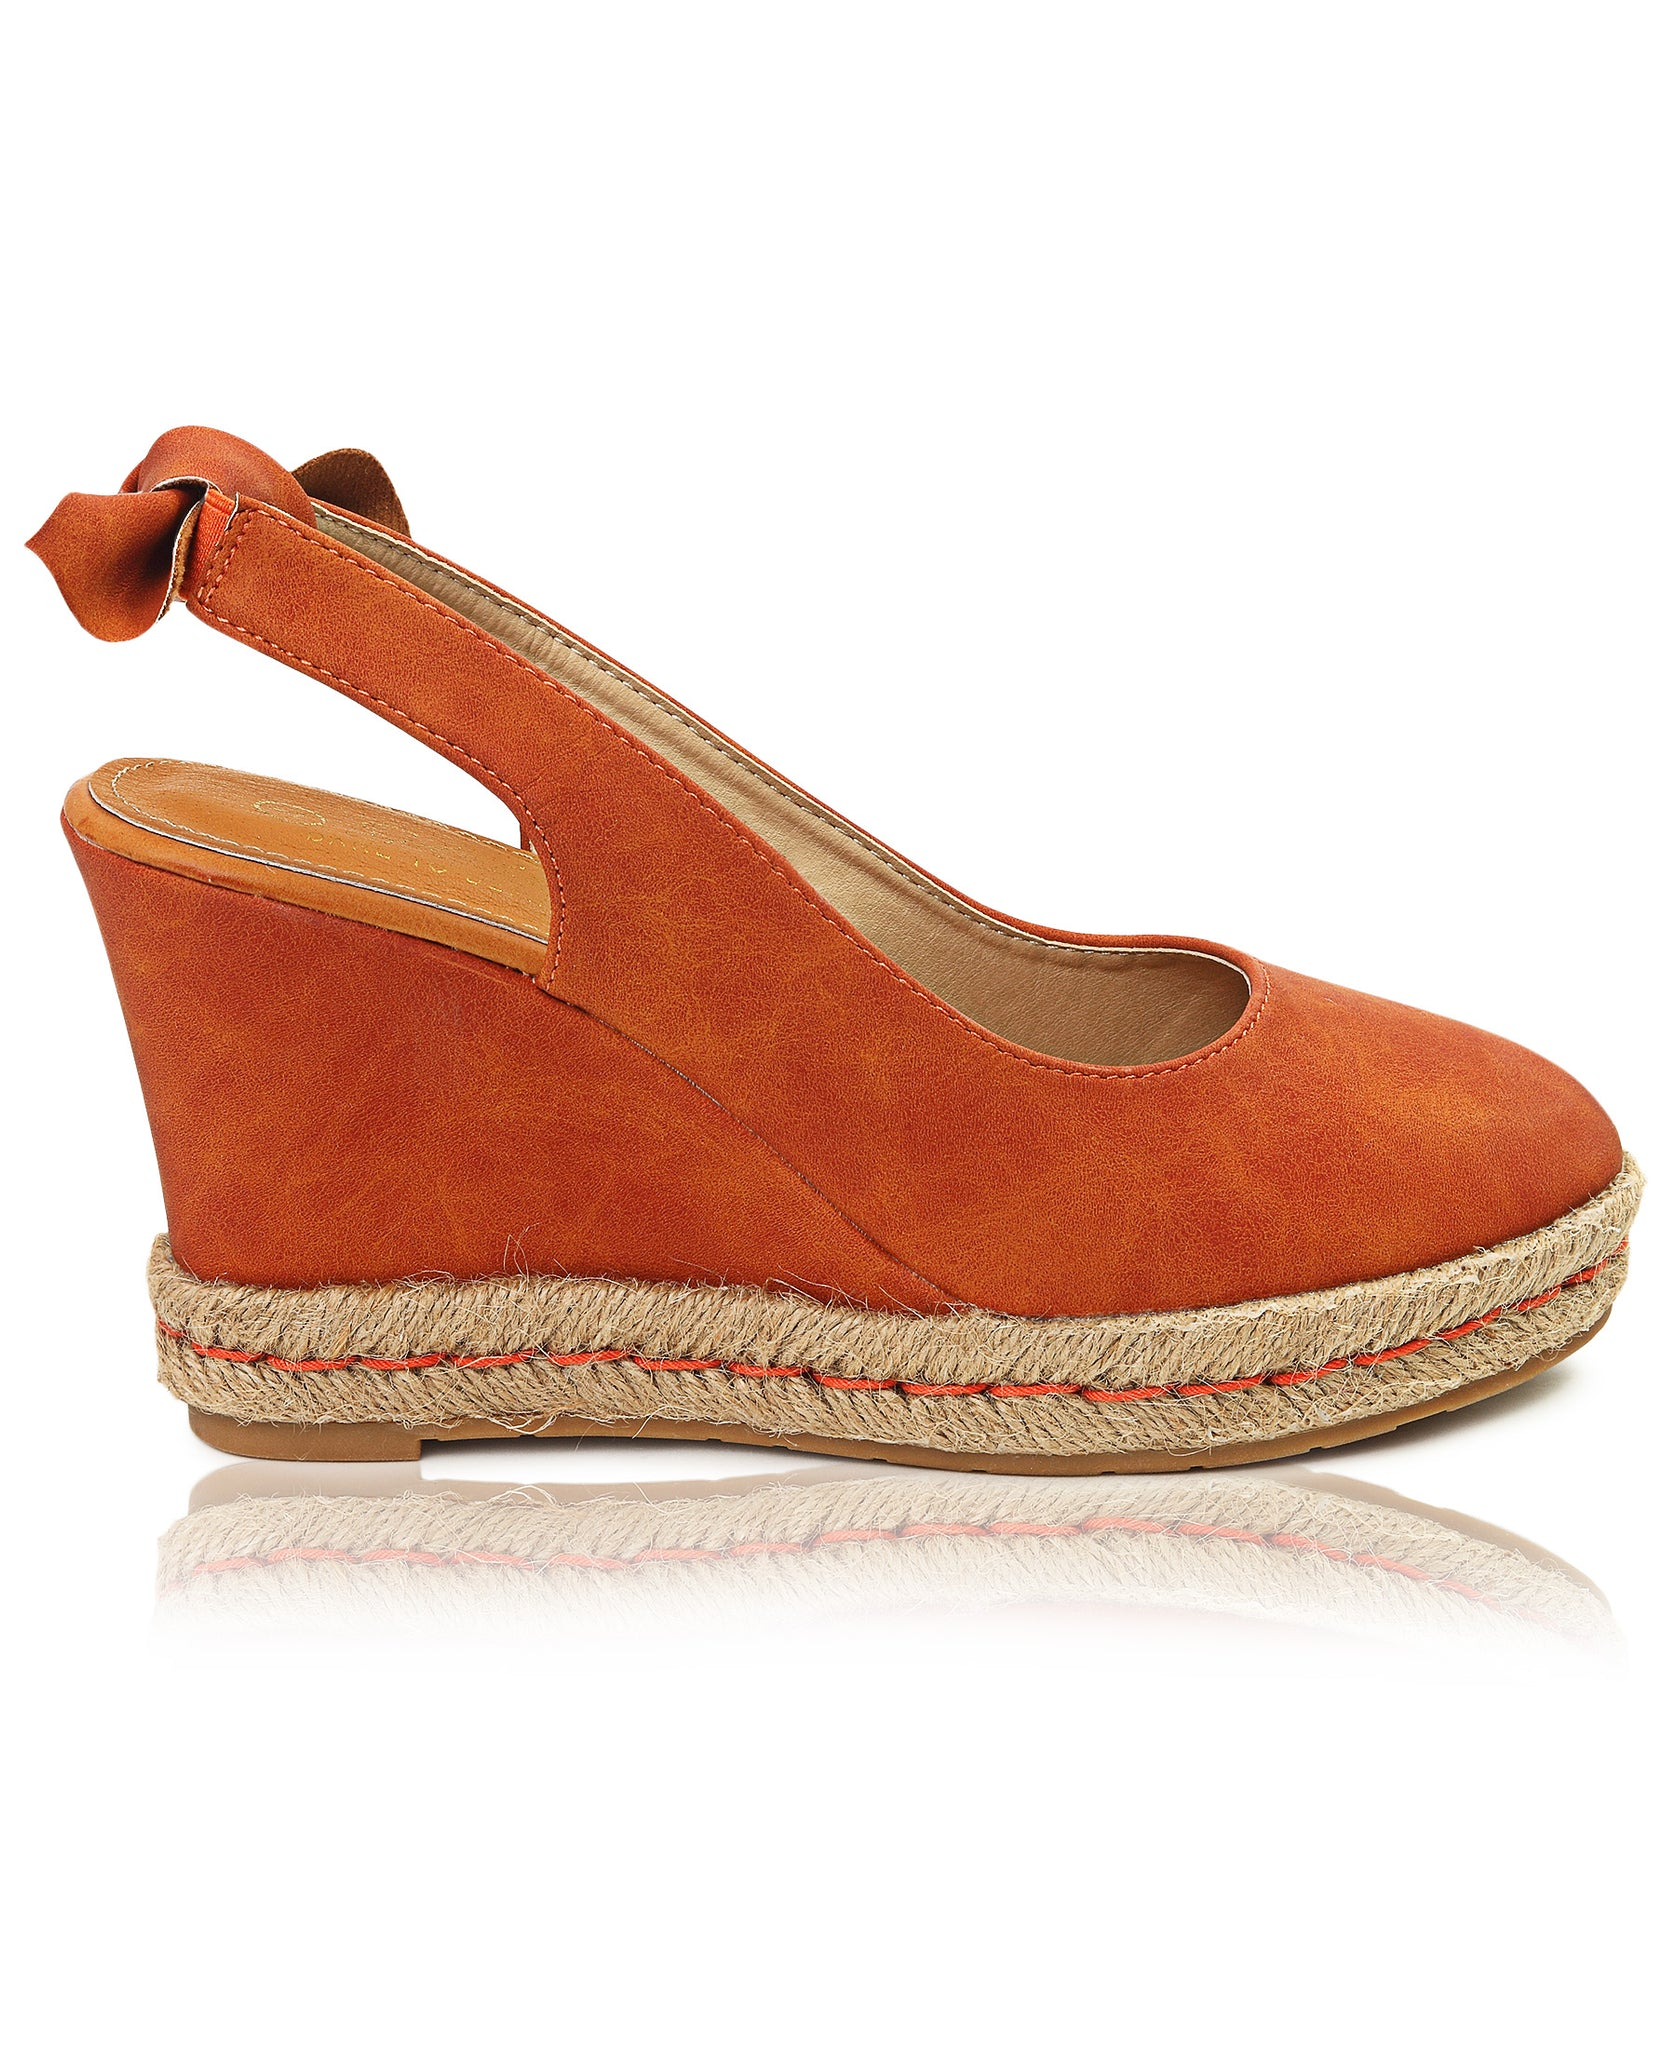 Wedge - Orange